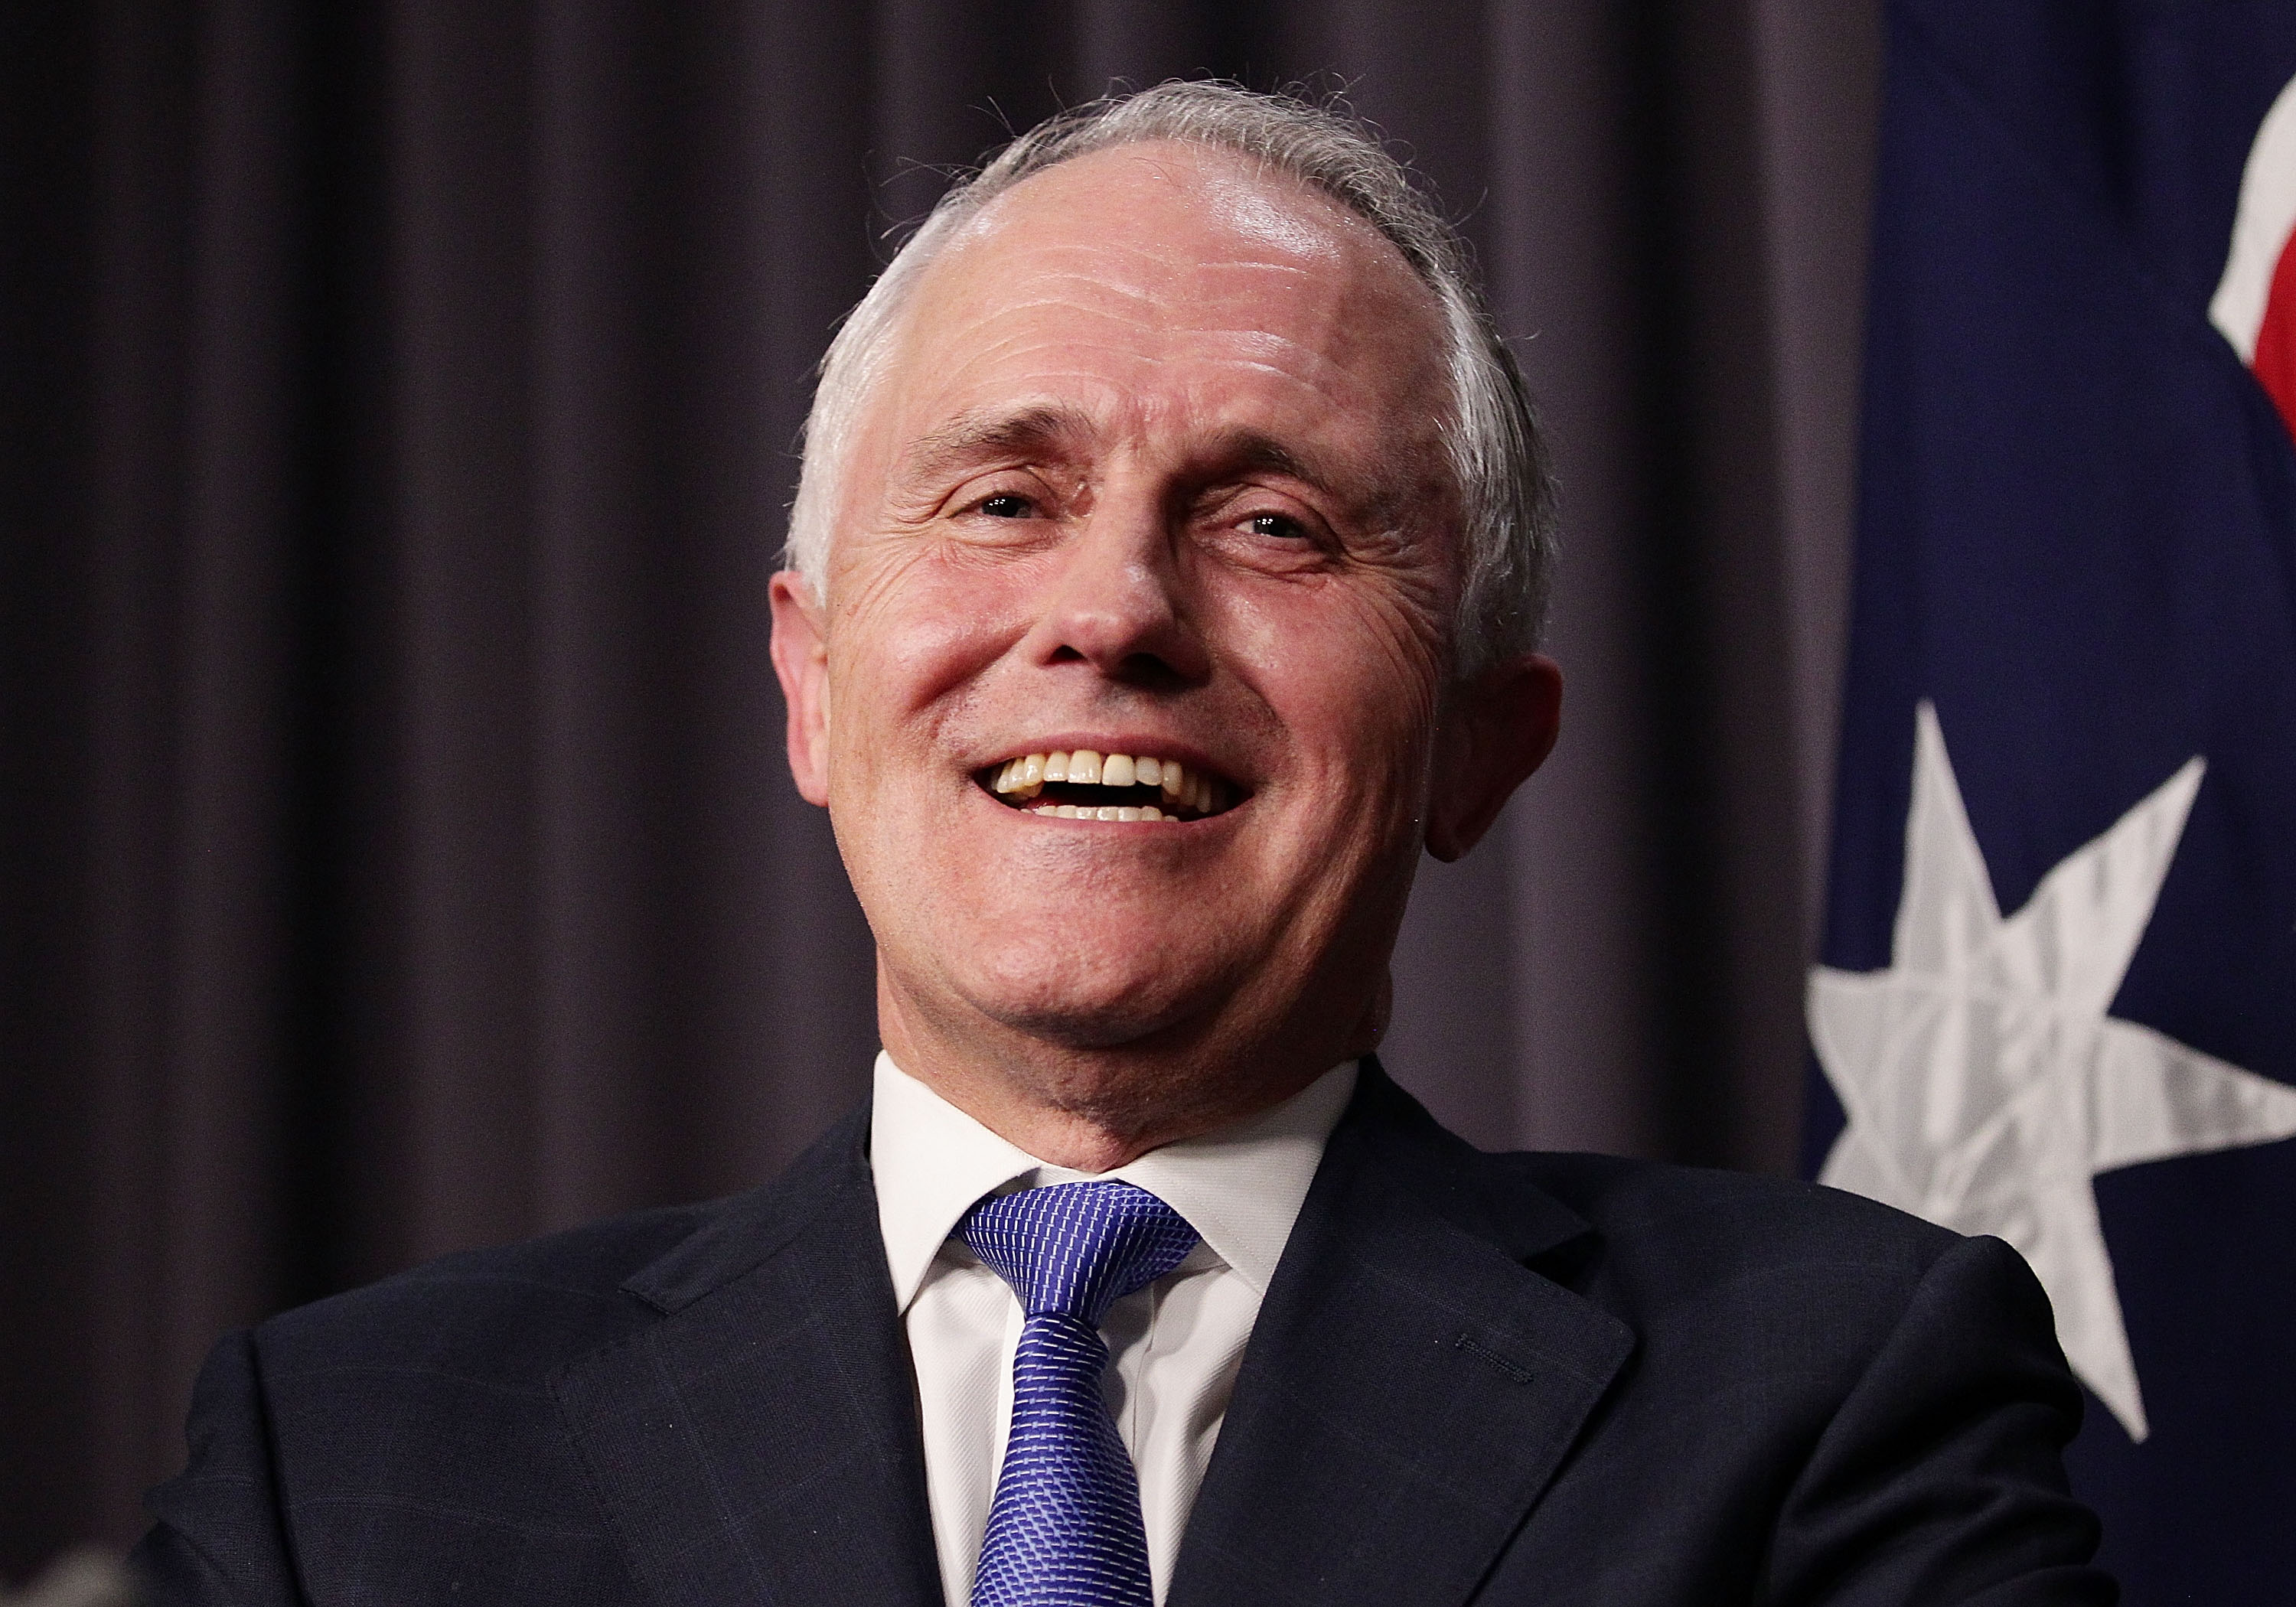 Malcolm Turnbull speaks to the media after winning the leadership ballot at Parliament House in Canberra on Sept. 14, 2015